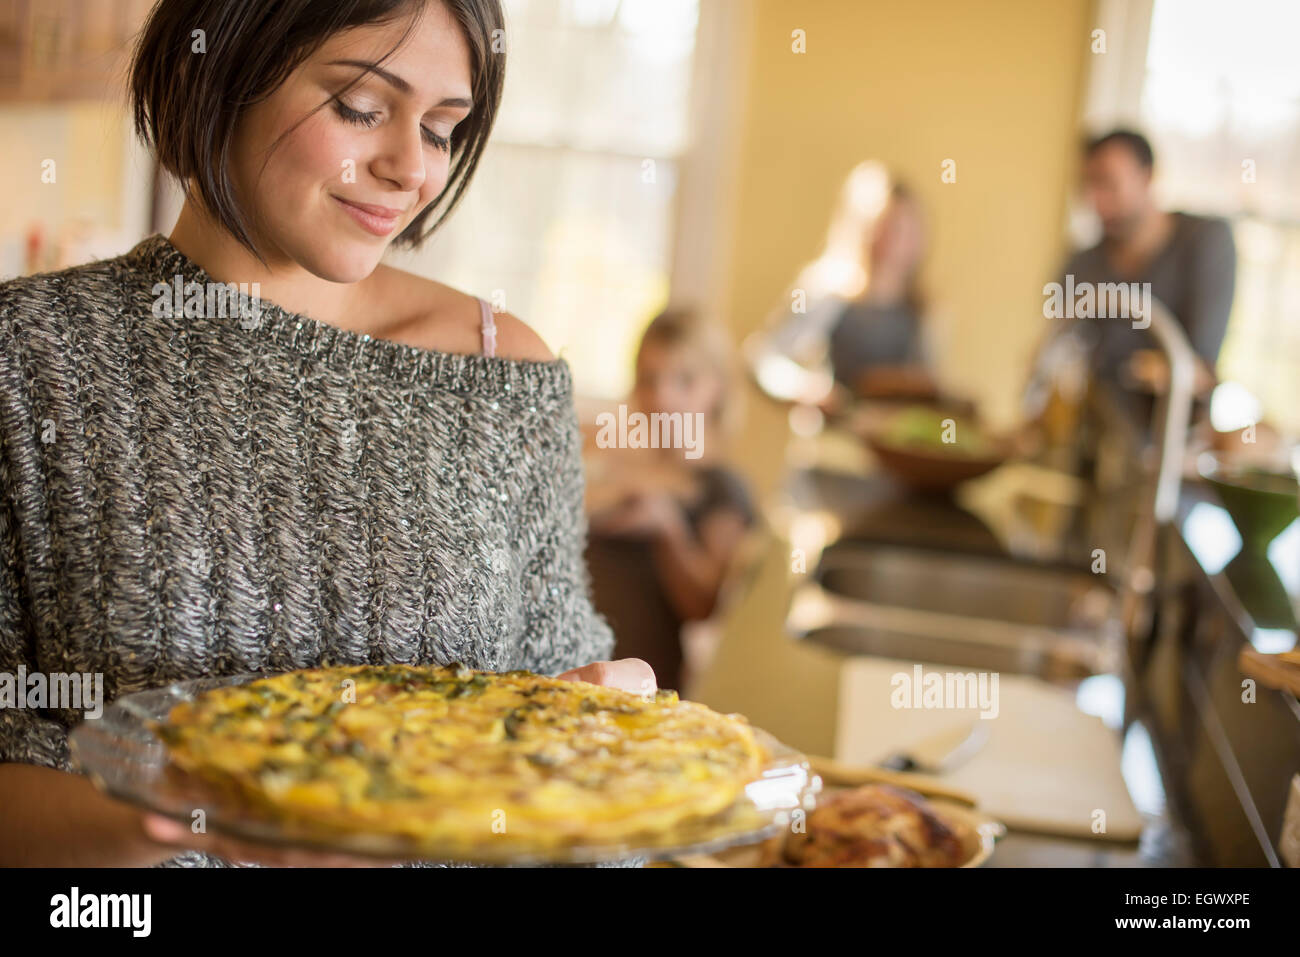 A woman carrying prepared food to the table. - Stock Image